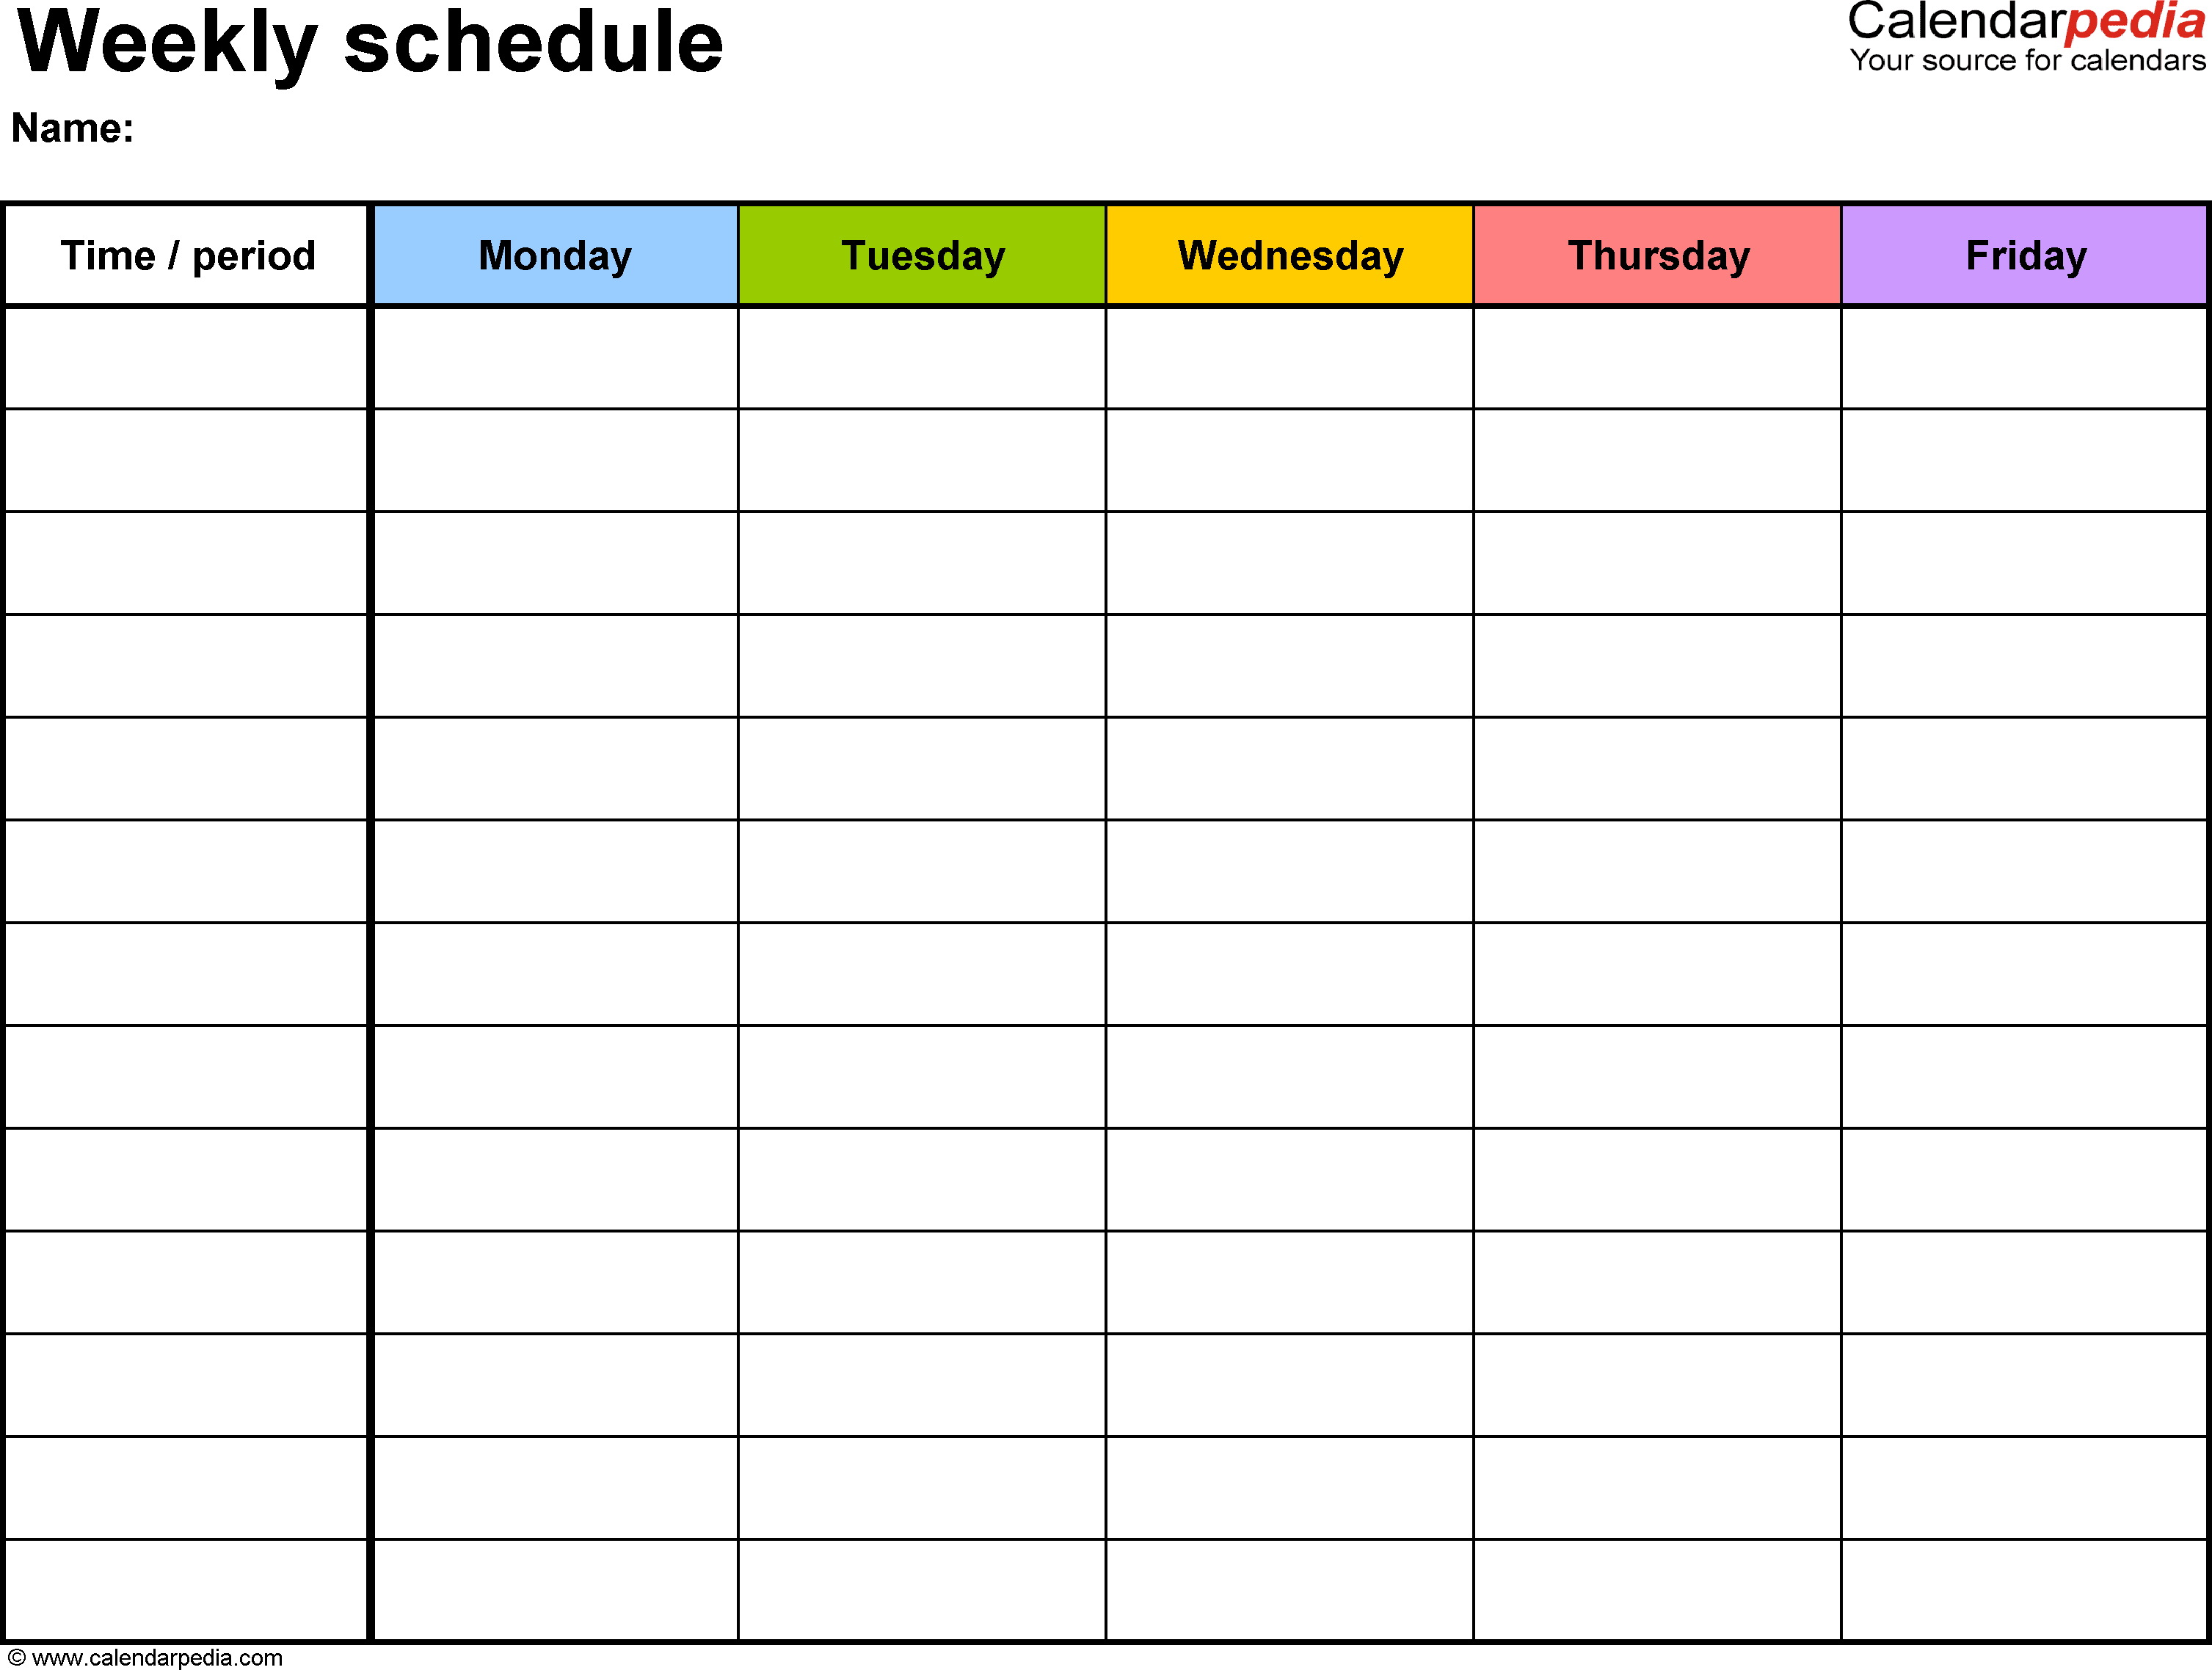 Free Weekly Schedule Templates For Excel - 18 Templates pertaining to Blank Calendar Hourly Schedule